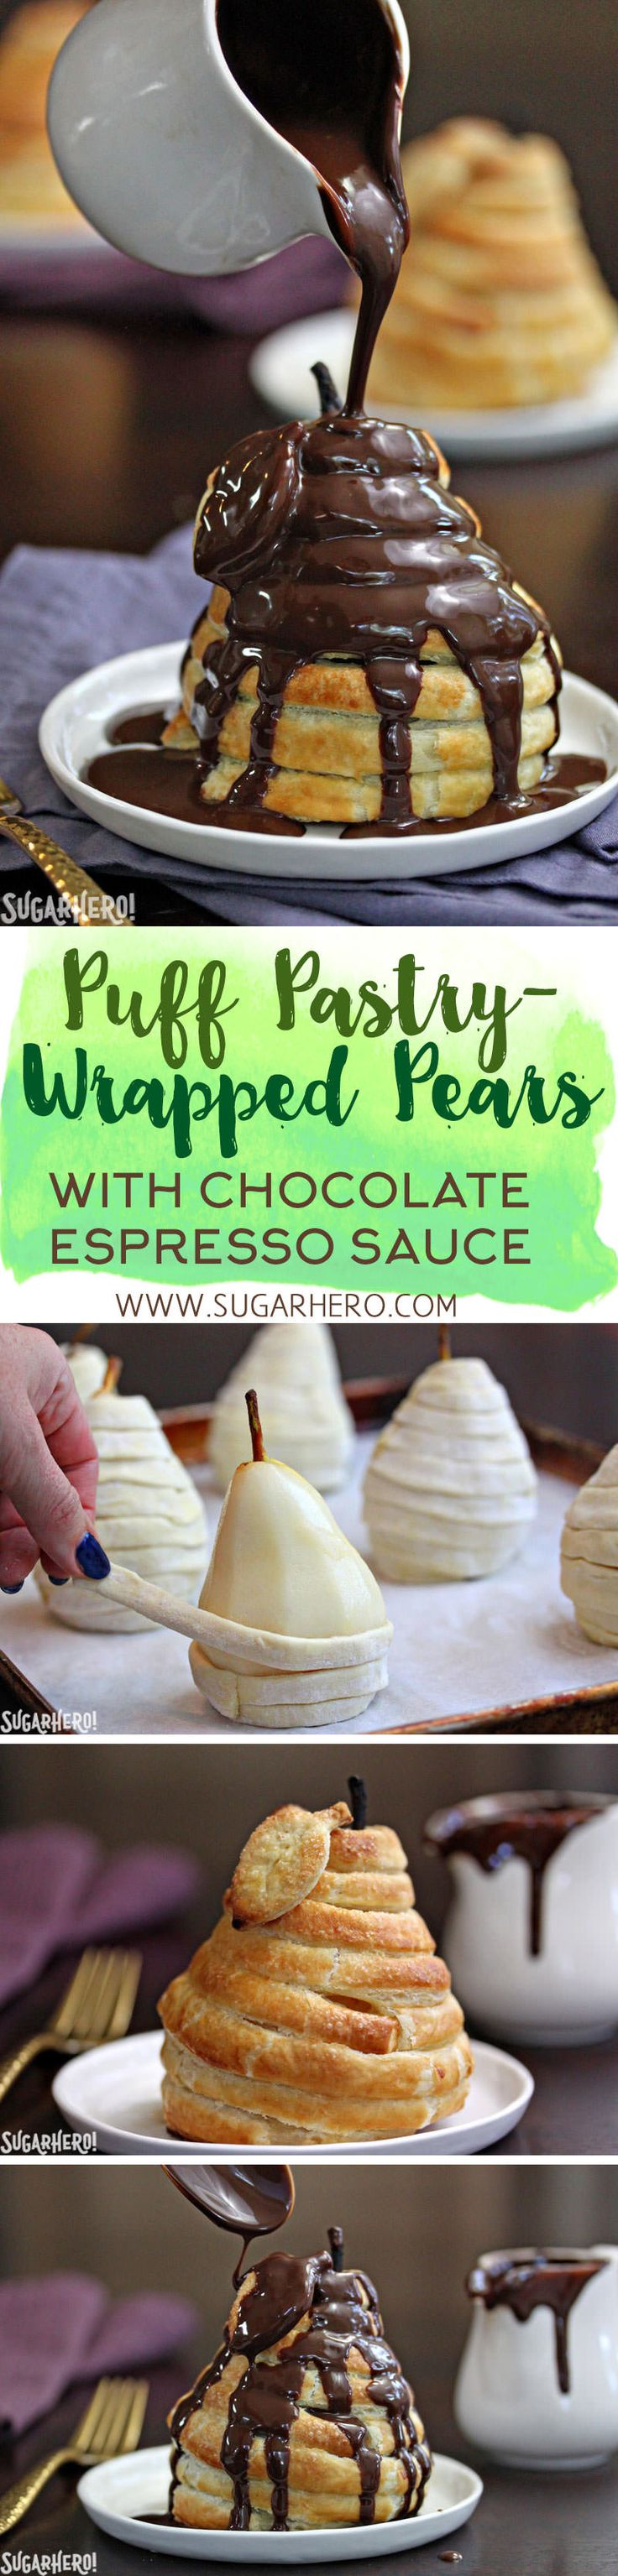 These puff pastry-wrapped pears are so elegant, you won't believe how easy they are to make! Serve them with chocolate espresso sauce for the perfect bittersweet accompaniment. | From SugarHero.com